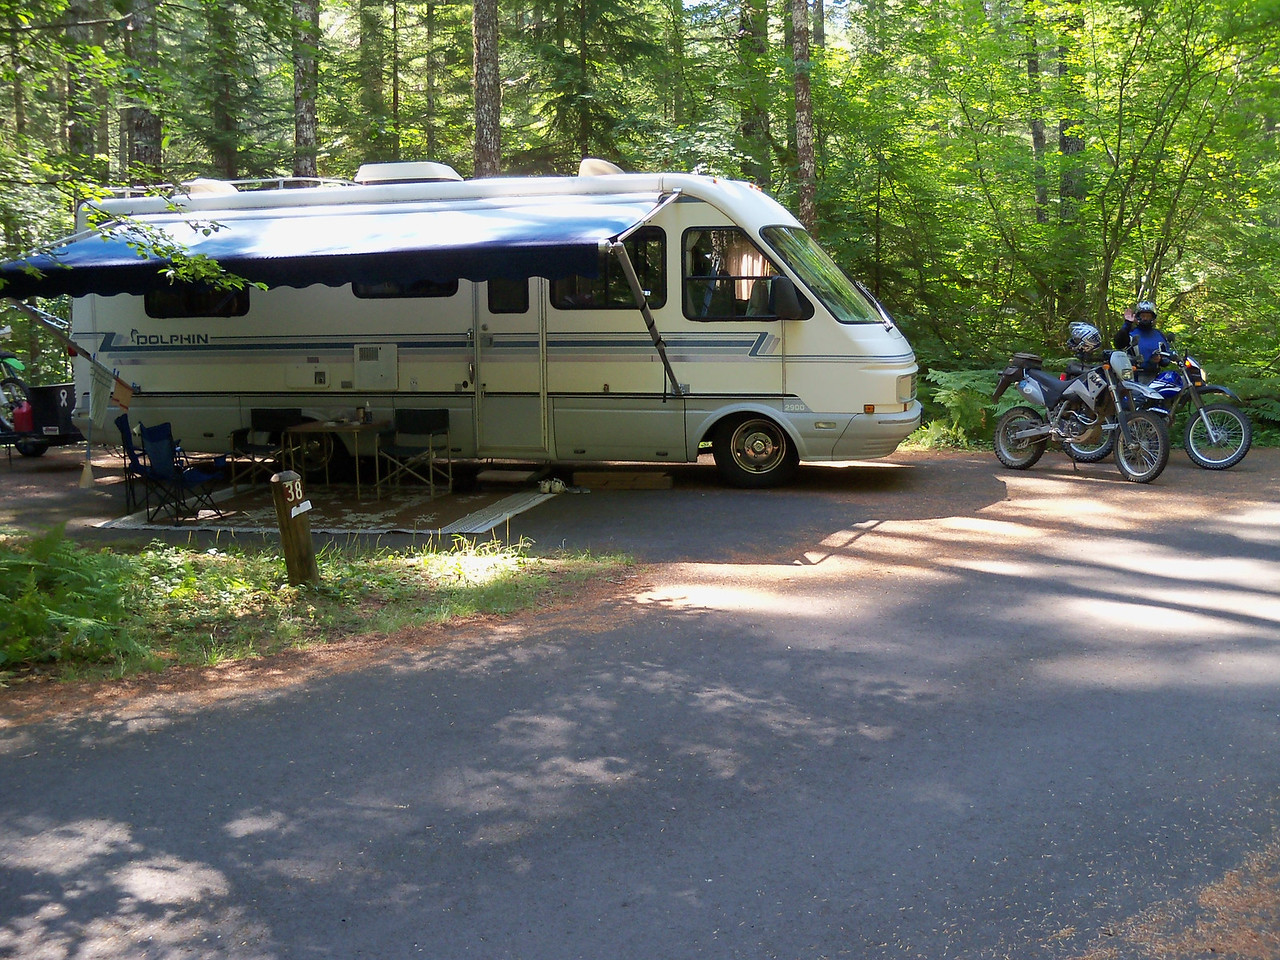 Lower Lewis River Falls Campground on FS 90. Our home for the next 6 days.